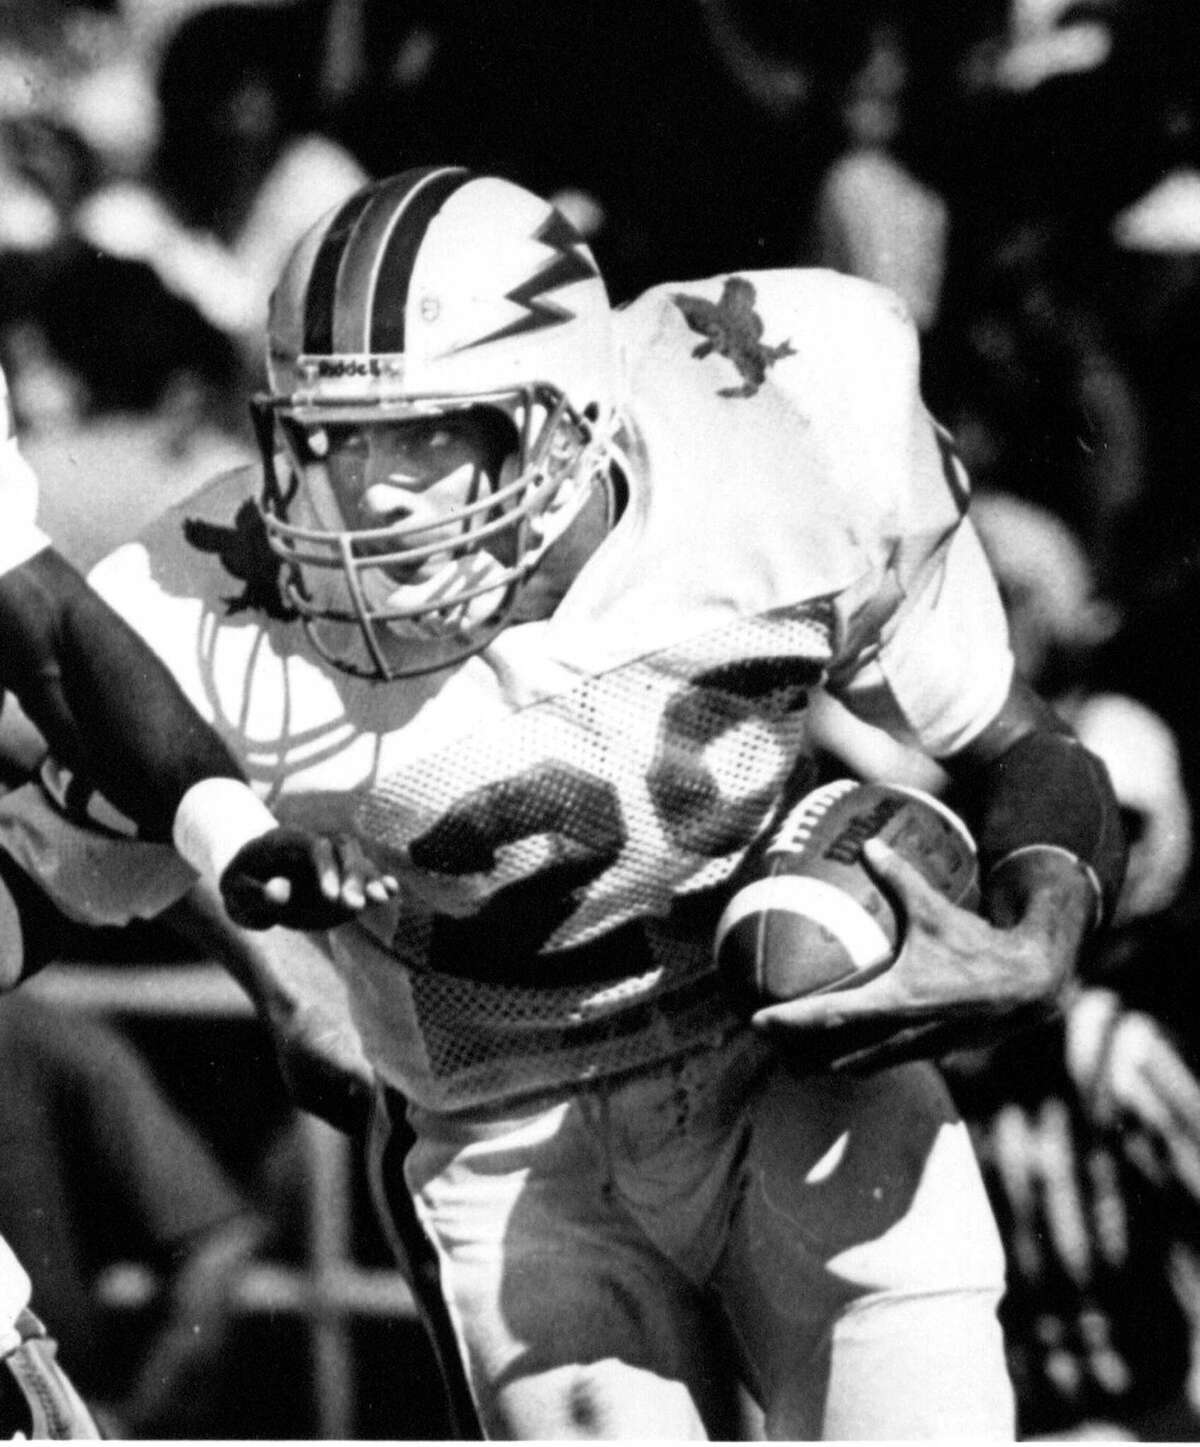 Scott Thomas at Air Force, returning a kick in the mid-1980's. Thomas was inducted into the Air Force Hall of Fame in 2011.